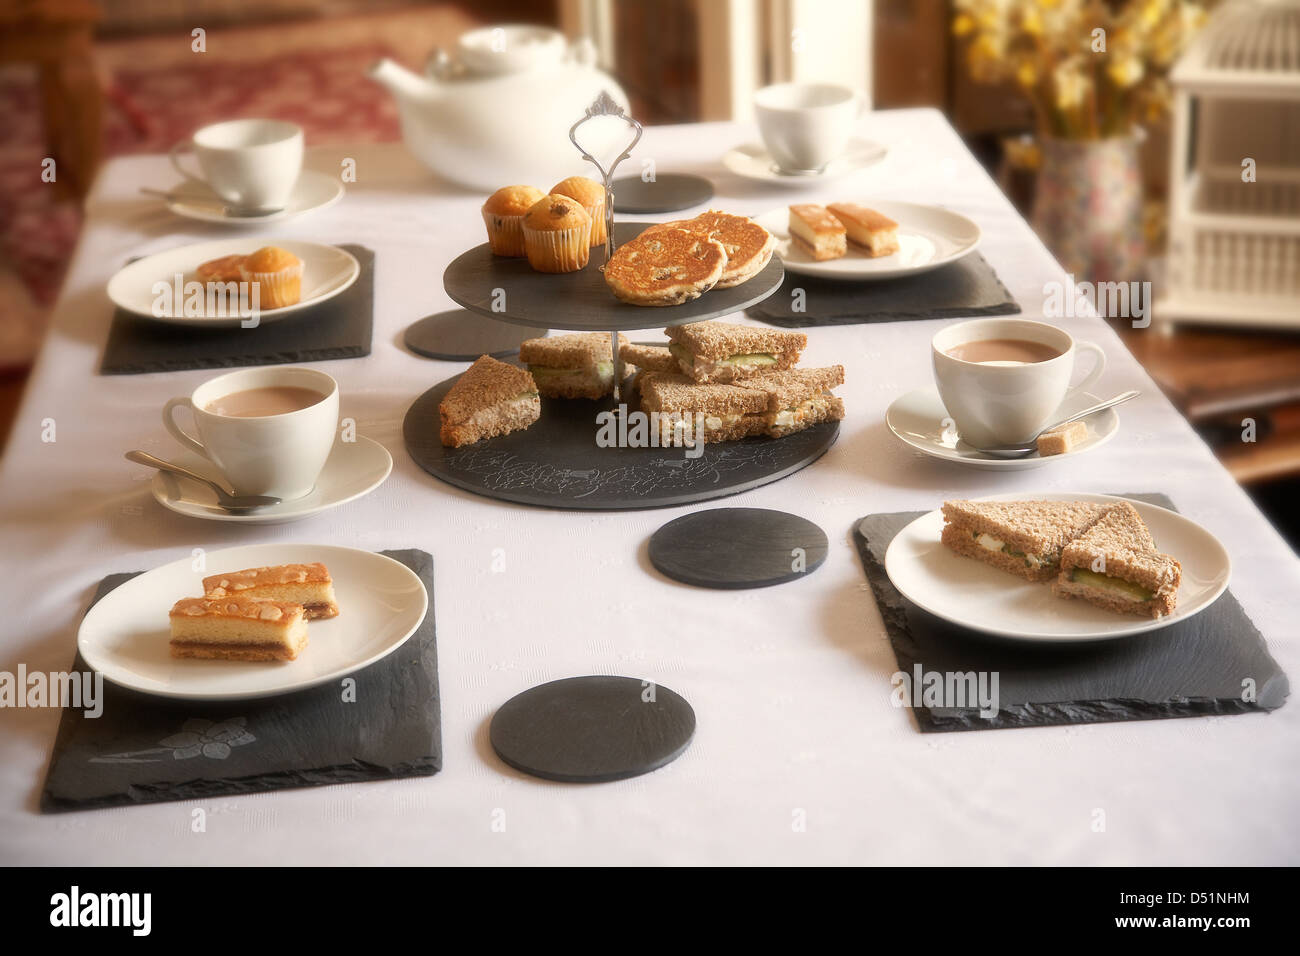 Afternoon tea table setting using welsh slate placemats and coasters in a home in south Wales UK & Afternoon tea table setting using welsh slate placemats and coasters ...